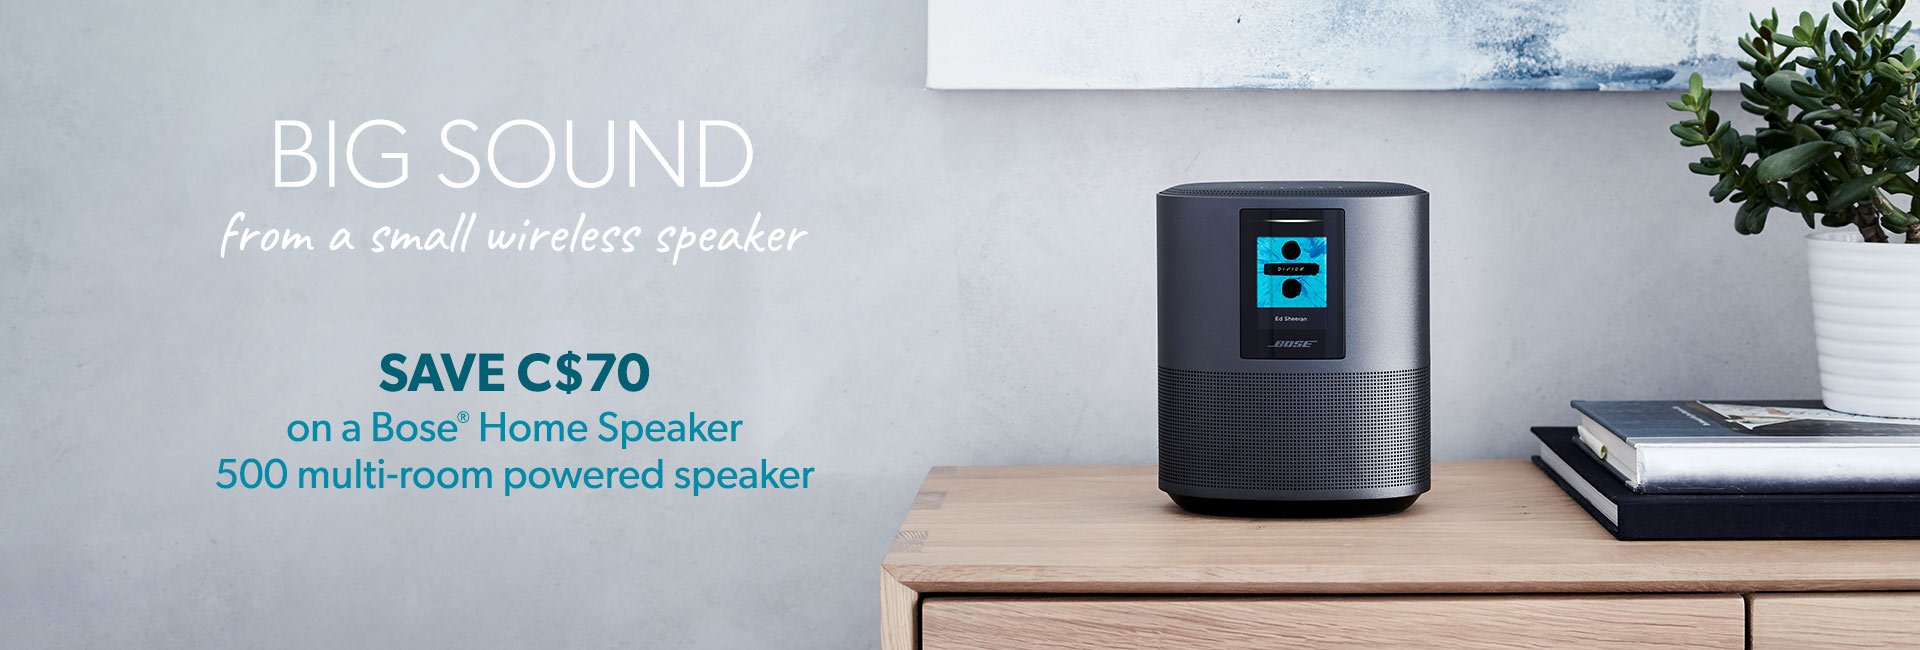 Save C$70 on a Bose® Home Speaker 500 multi-room powered speaker